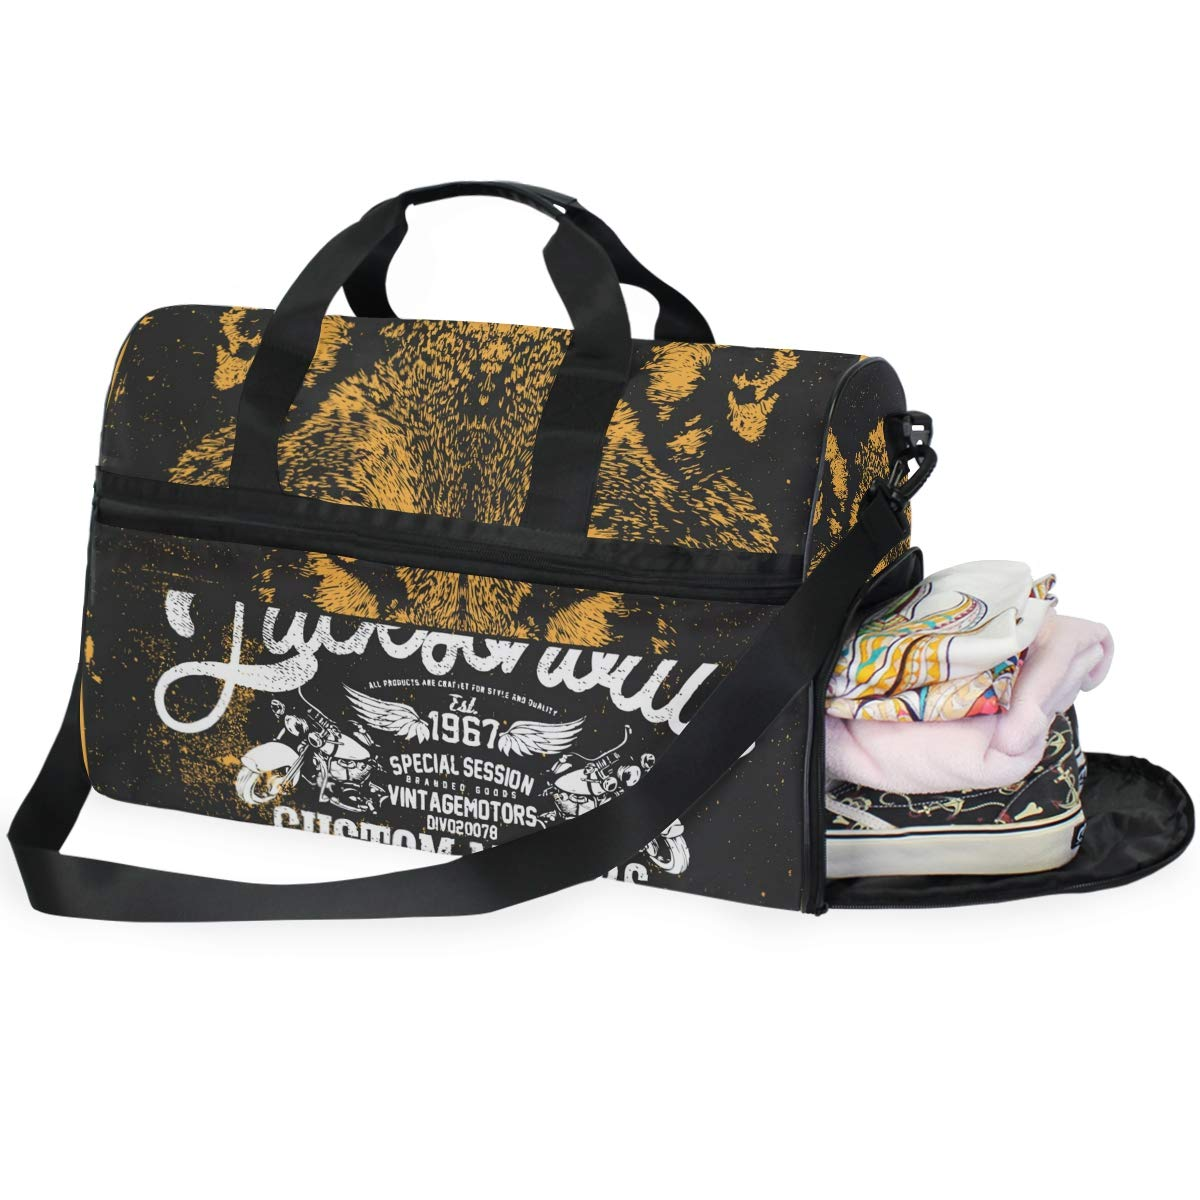 Travel Duffel Bag Vintage Wolf Waterproof Lightweight Luggage bag for Sports Gym Vacation